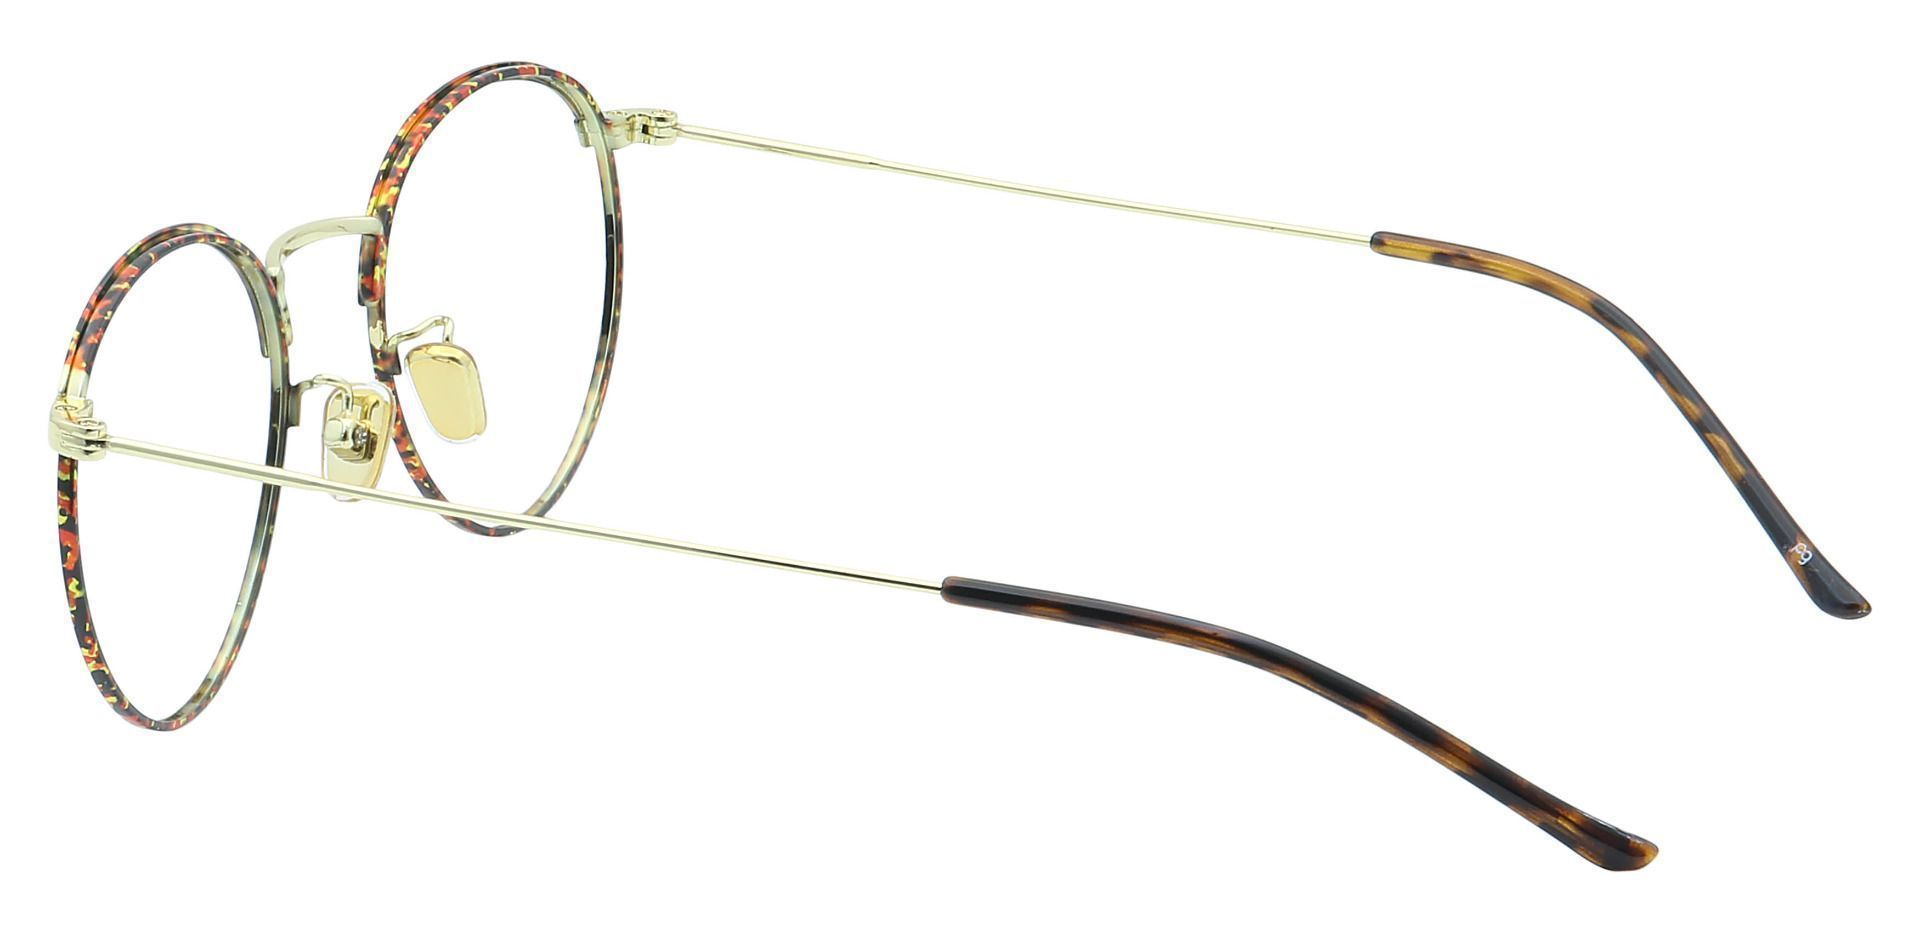 Cooper Oval Lined Bifocal Glasses - Tortoise